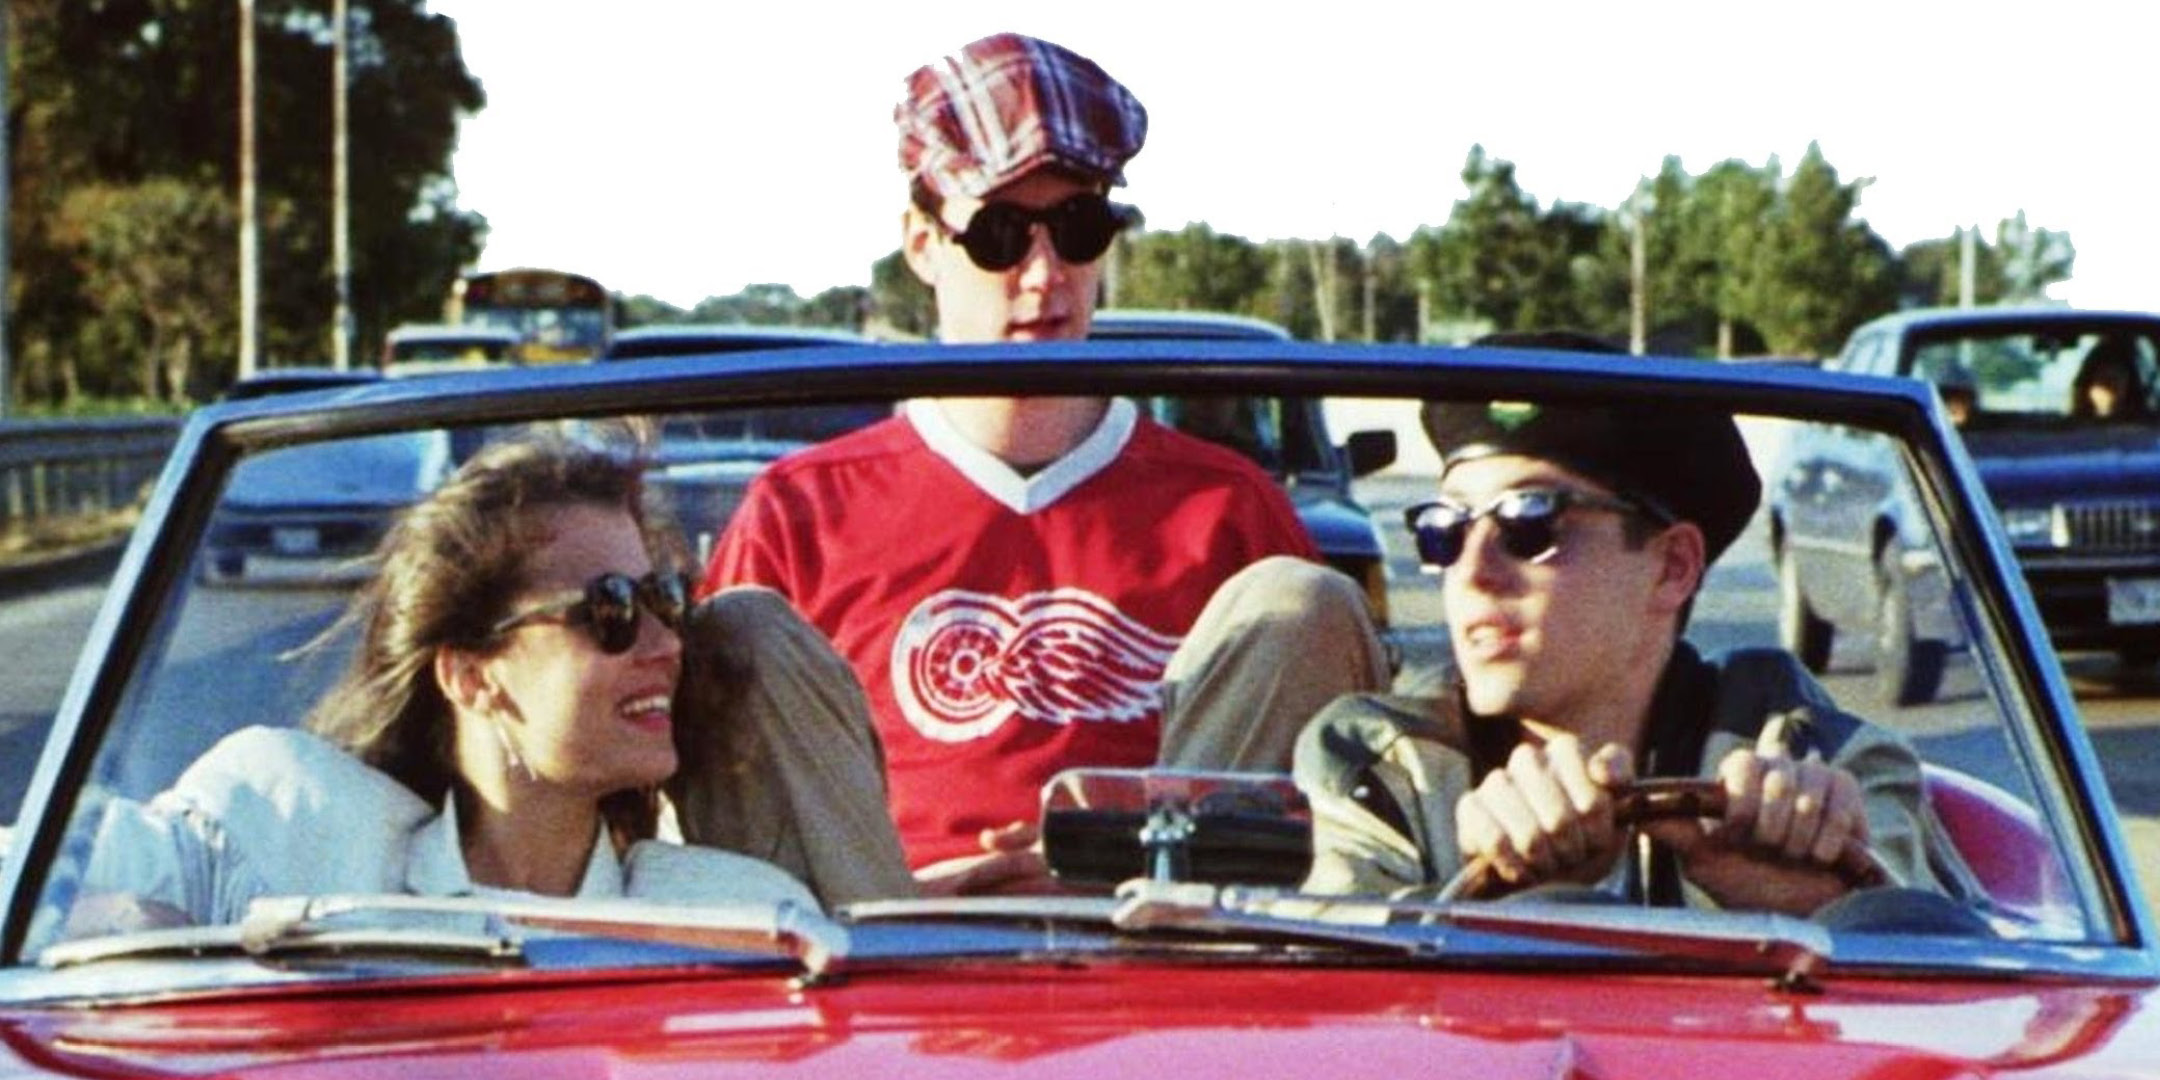 Ferris Bueller's Day Off — Saturday, July 27 - DONATIONS TO BENEFIT OUR LOCAL VOLUNTEER FIRE DEPARTMENT